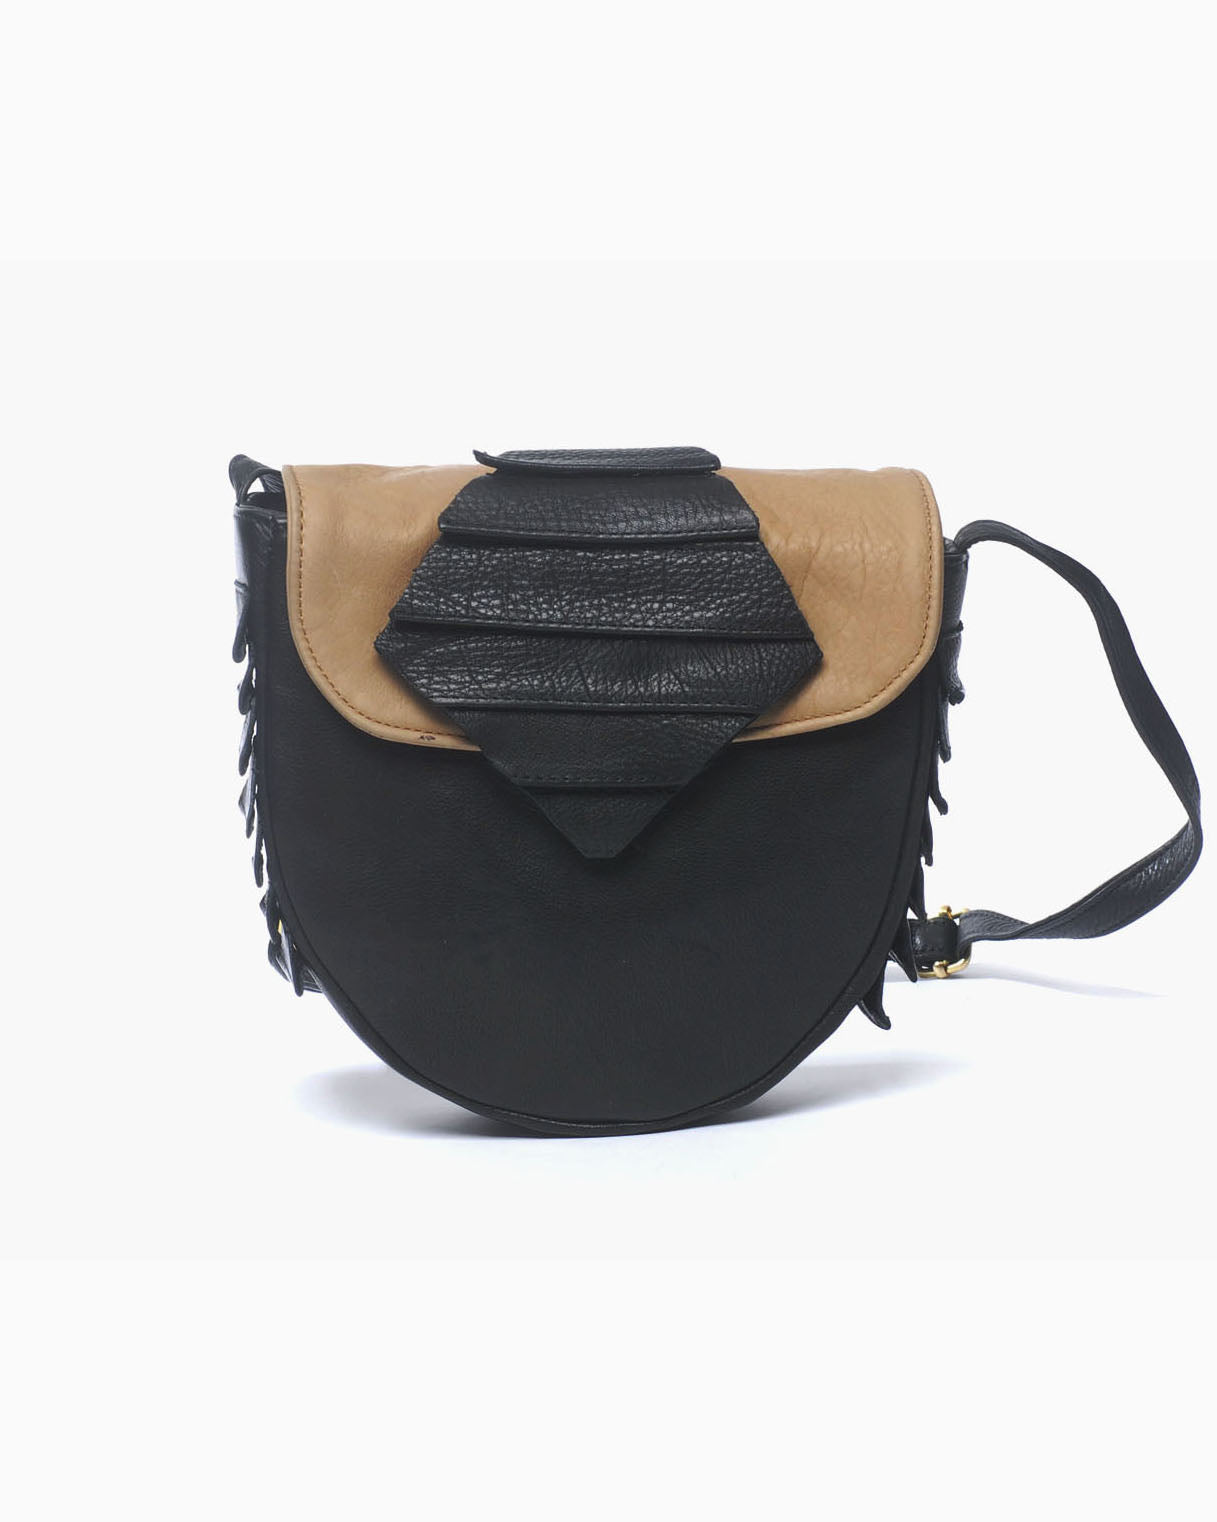 Cora Leather Bag (Black/Taupe)